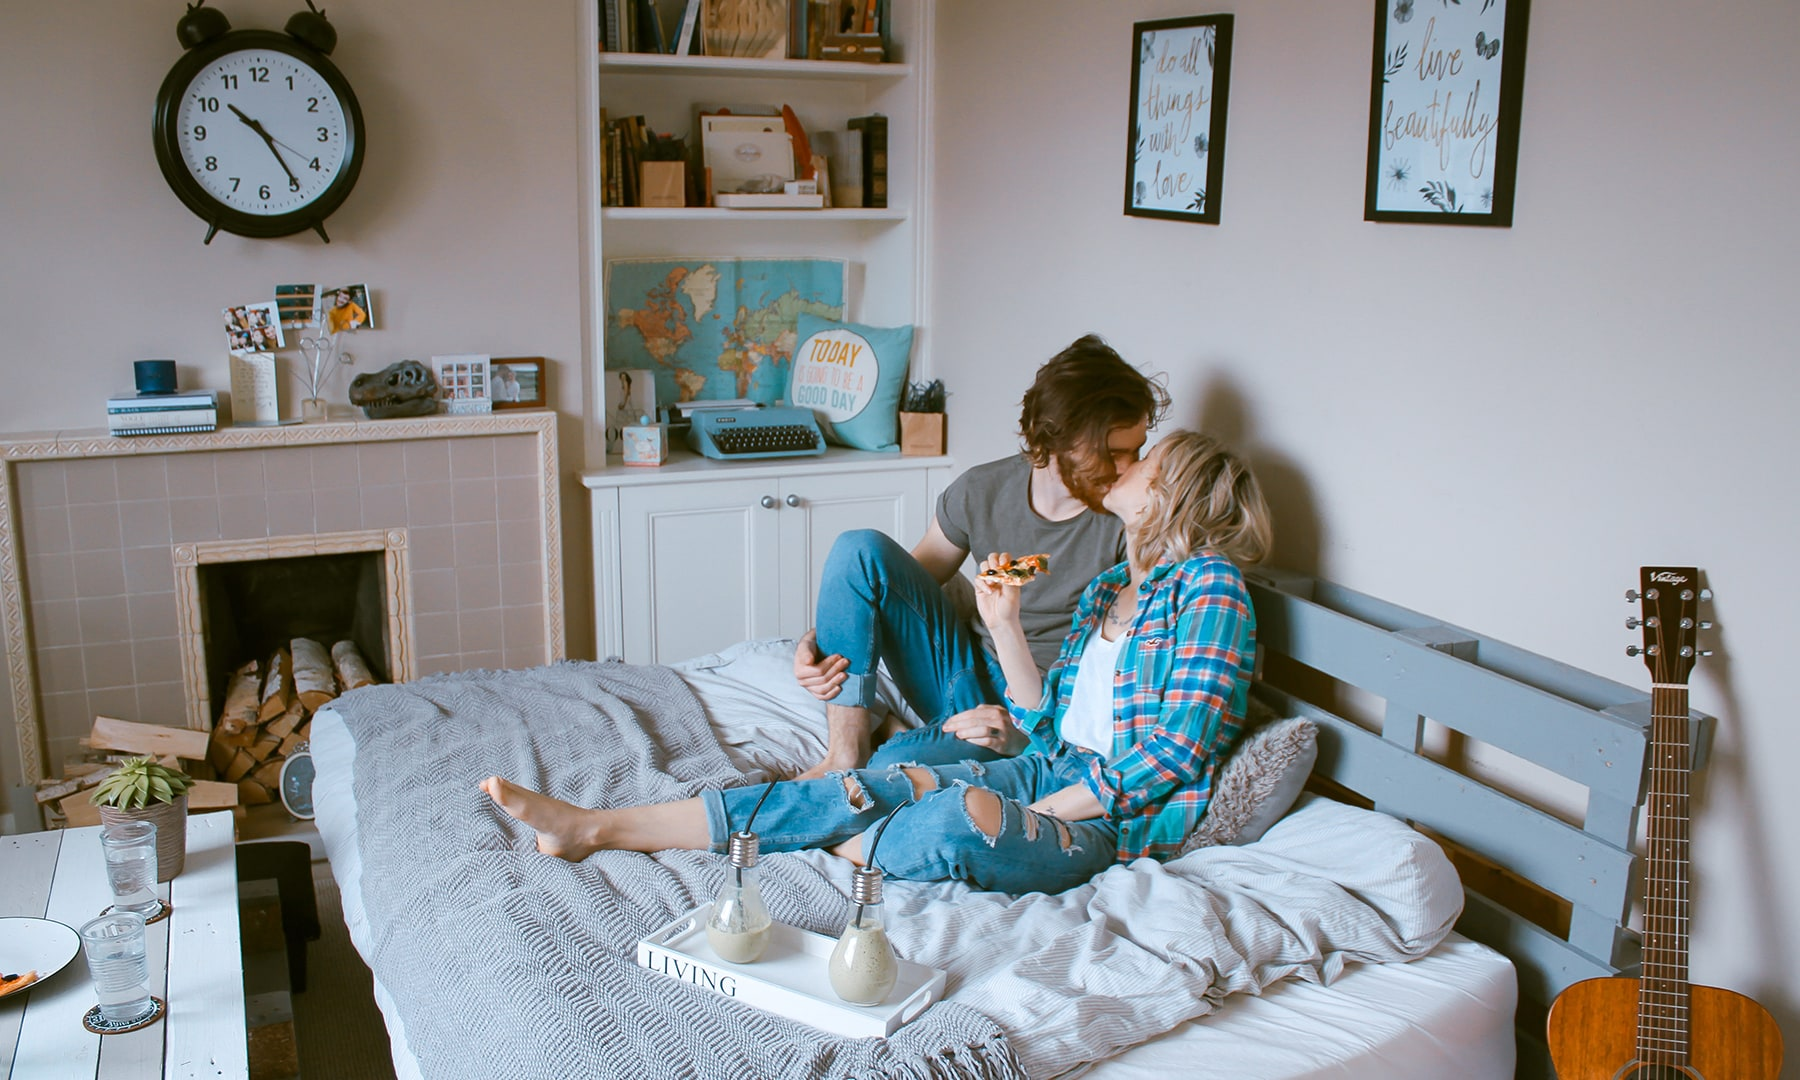 bloomthis-valentines-date-ideas-couple-spending-time-together-indoors